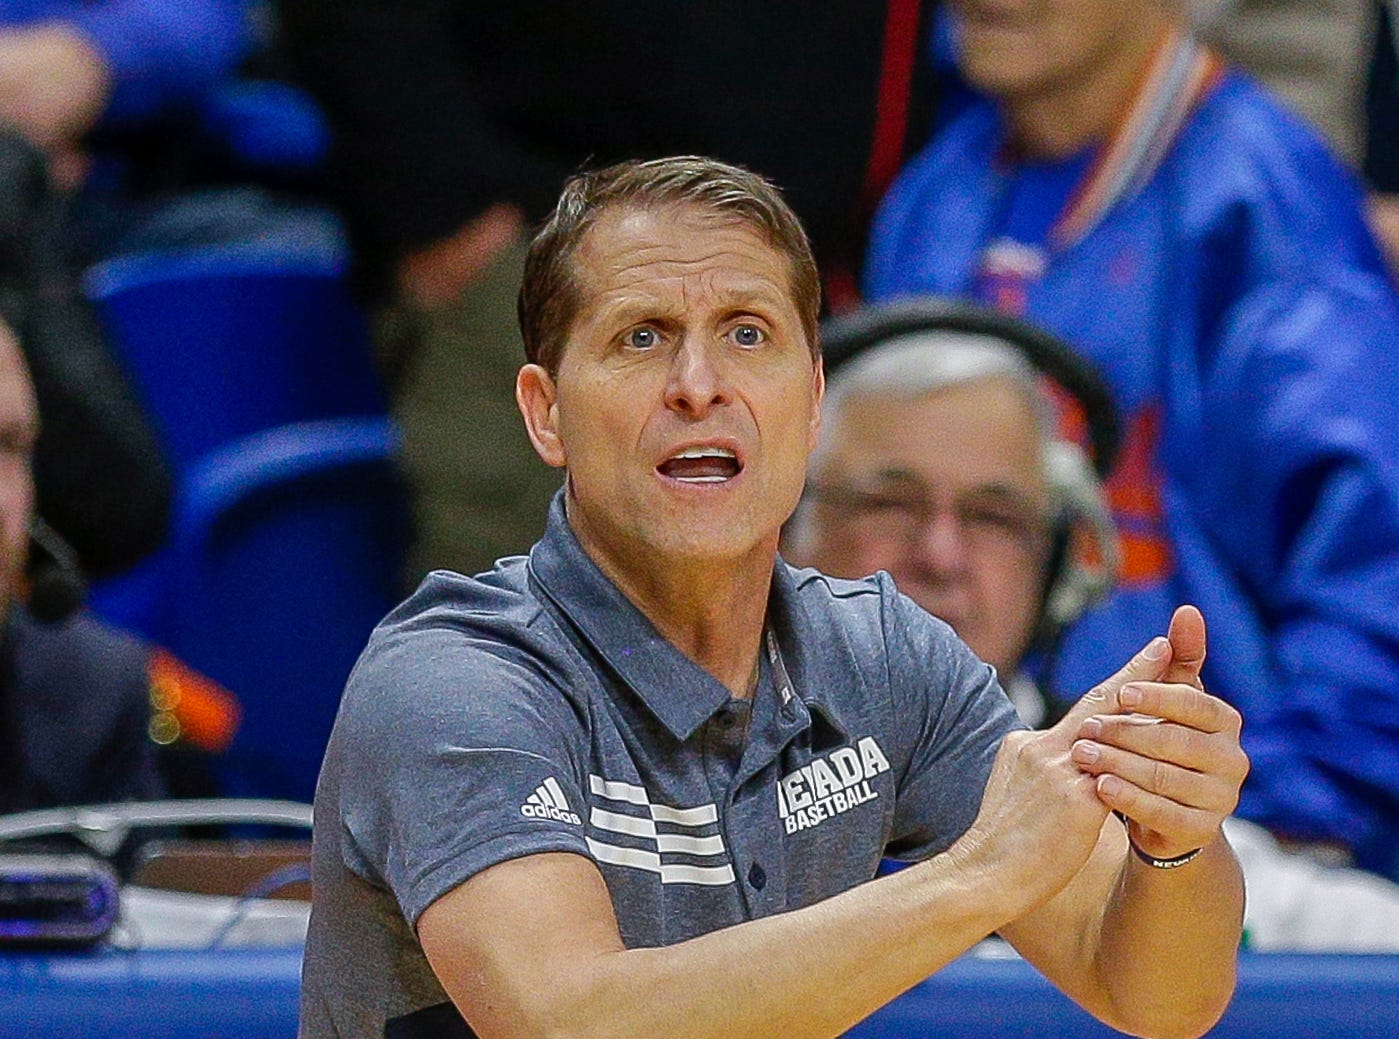 Nevada head coach Eric Musselman during the second half of an NCAA college basketball game against Boise State, Tuesday, Jan. 15, 2019, in Boise, Idaho. Nevada won 72-71. (AP Photo/Steve Conner)